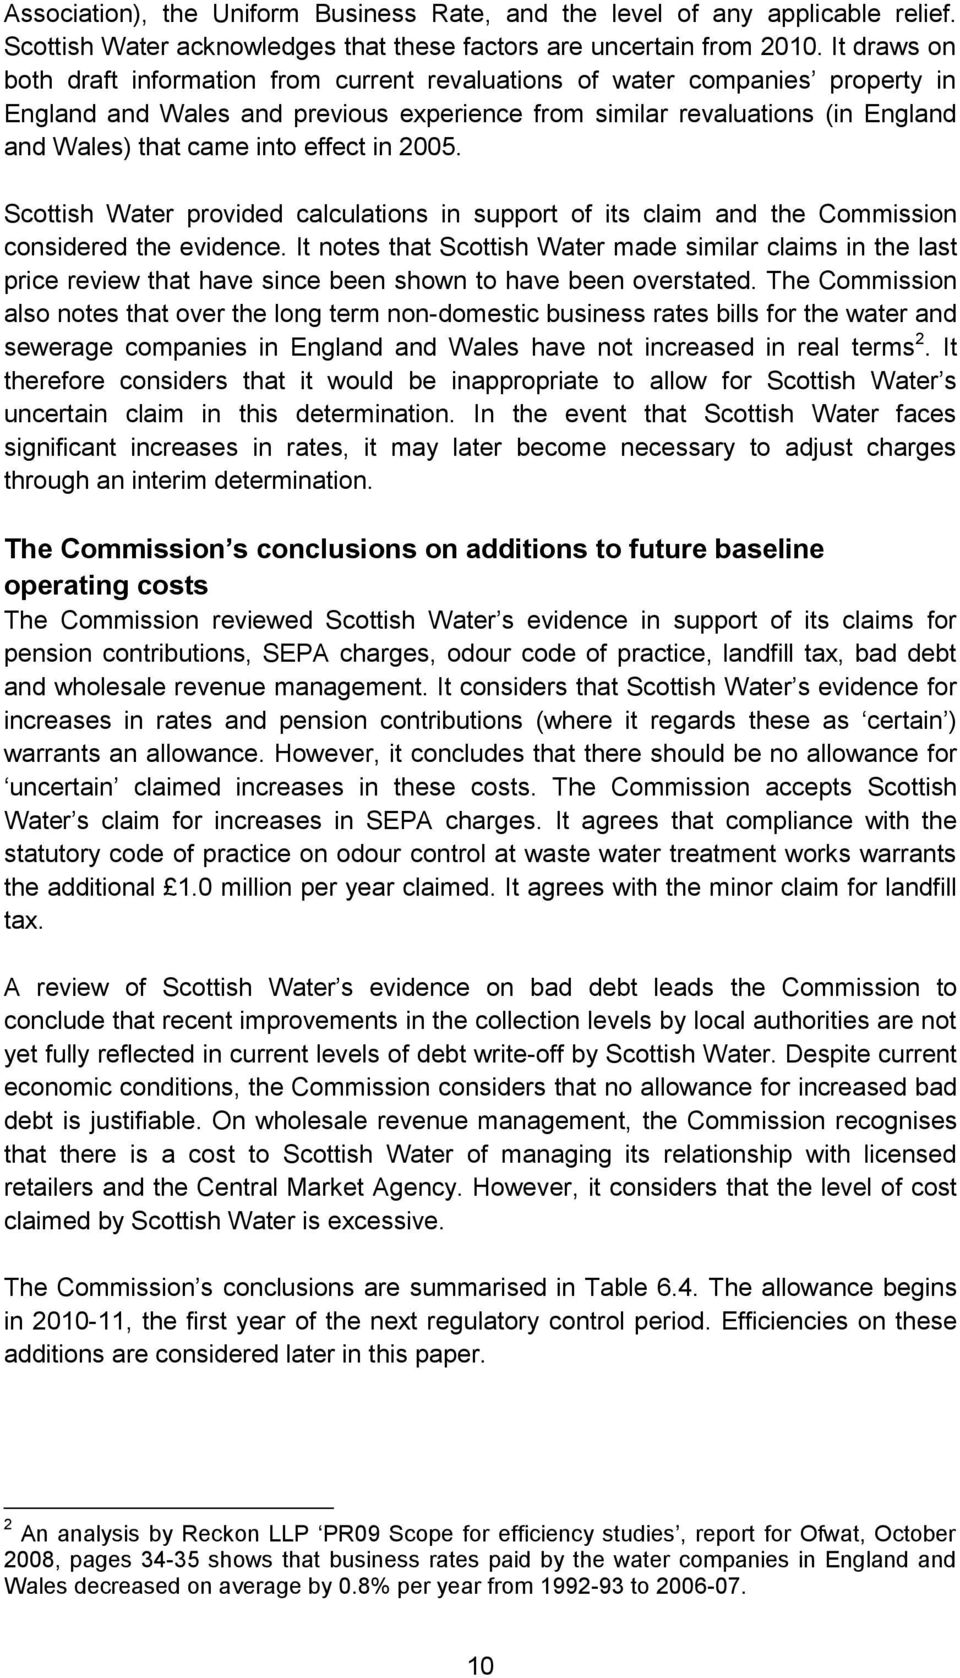 effect in 2005. Scottish Water provided calculations in support of its claim and the Commission considered the evidence.